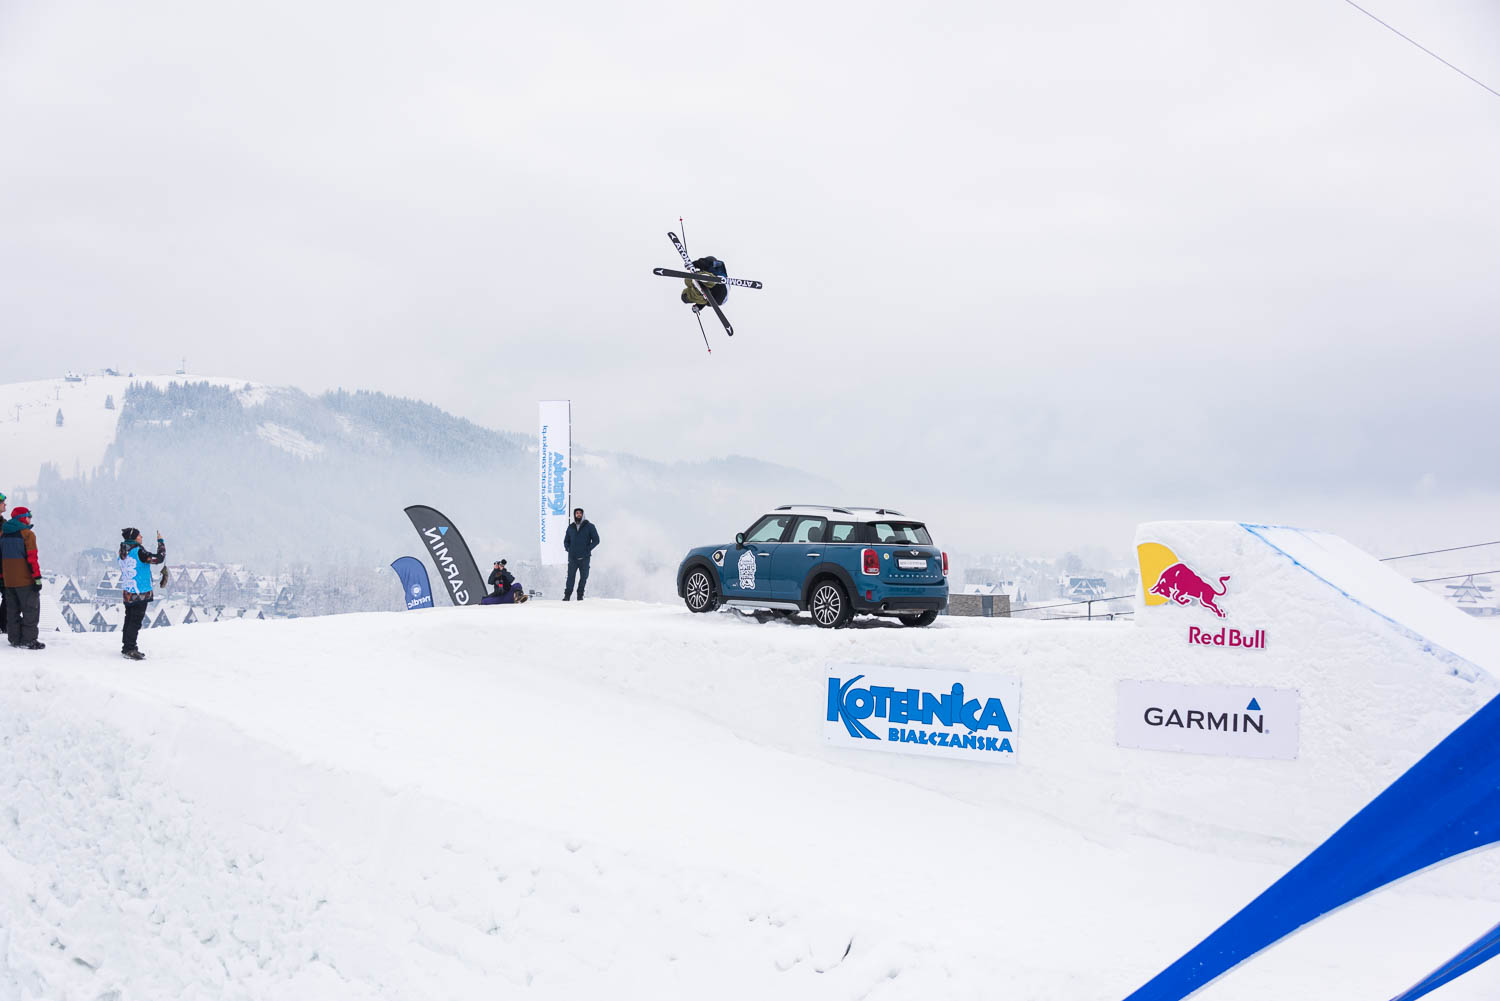 Big Air Event Like No Other